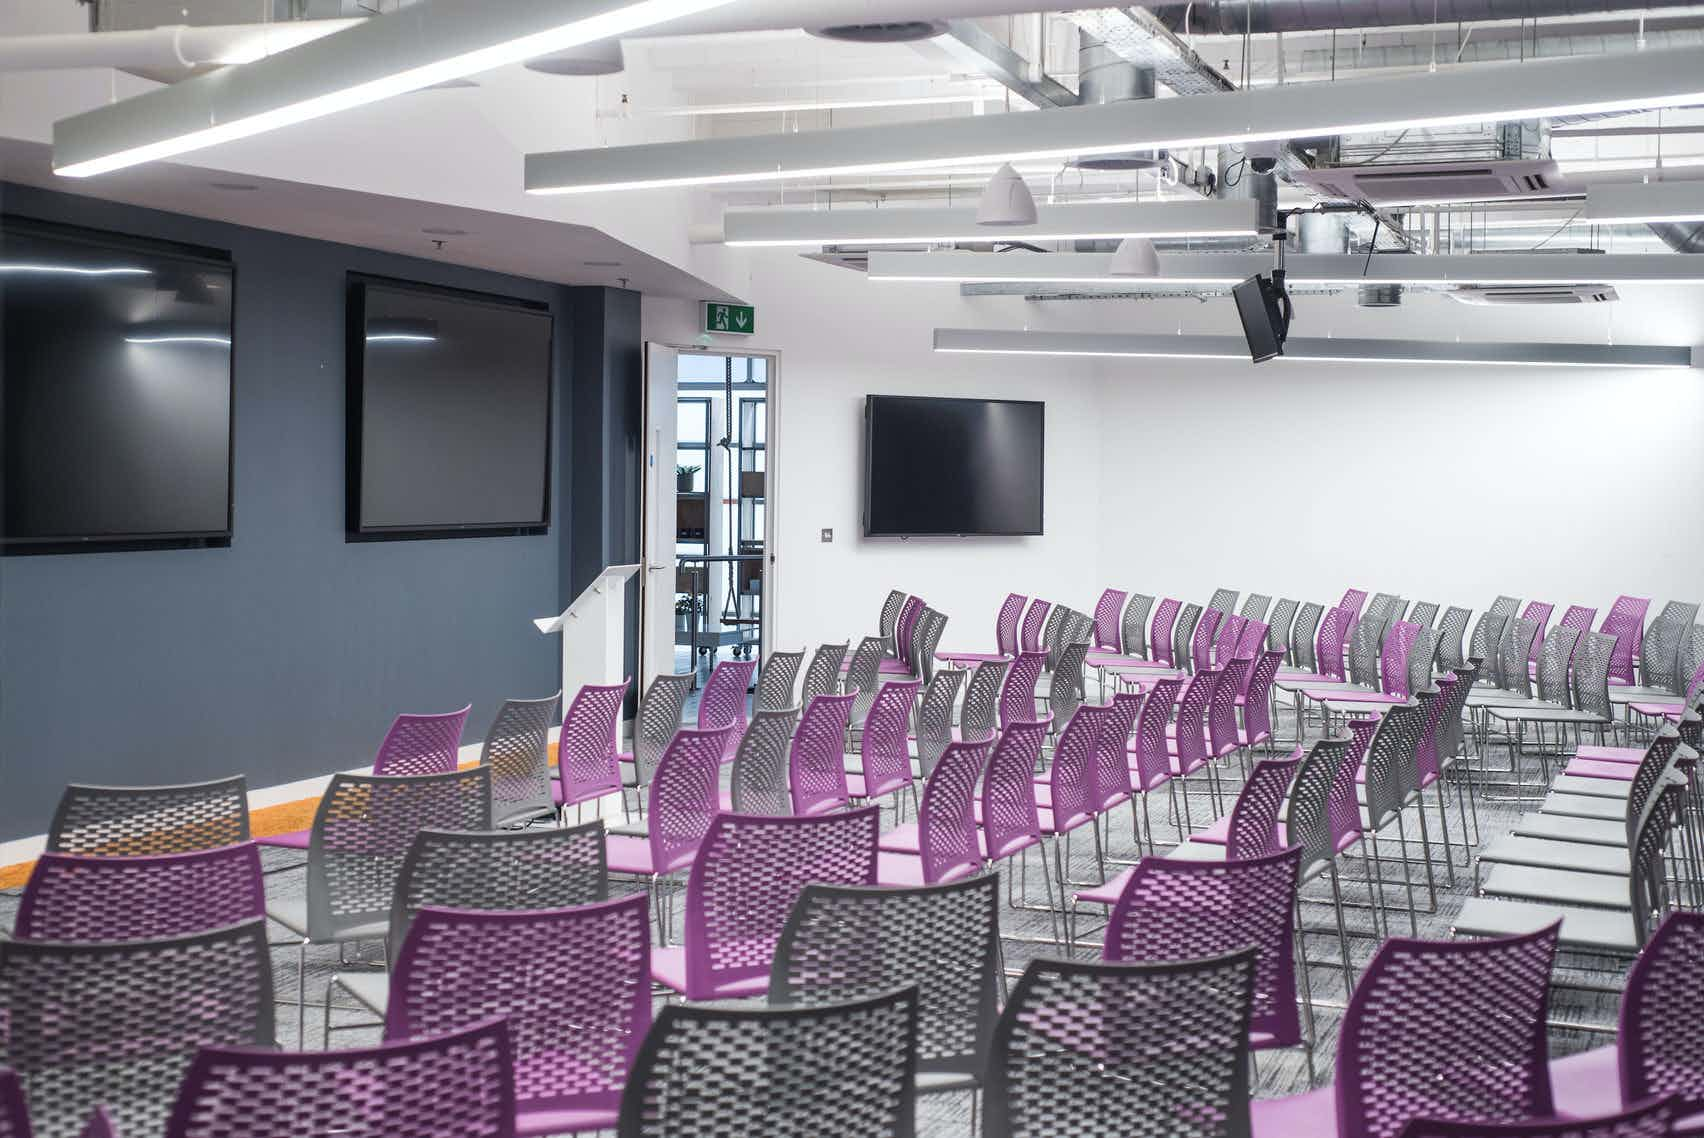 Auditorium, Events and Education Space